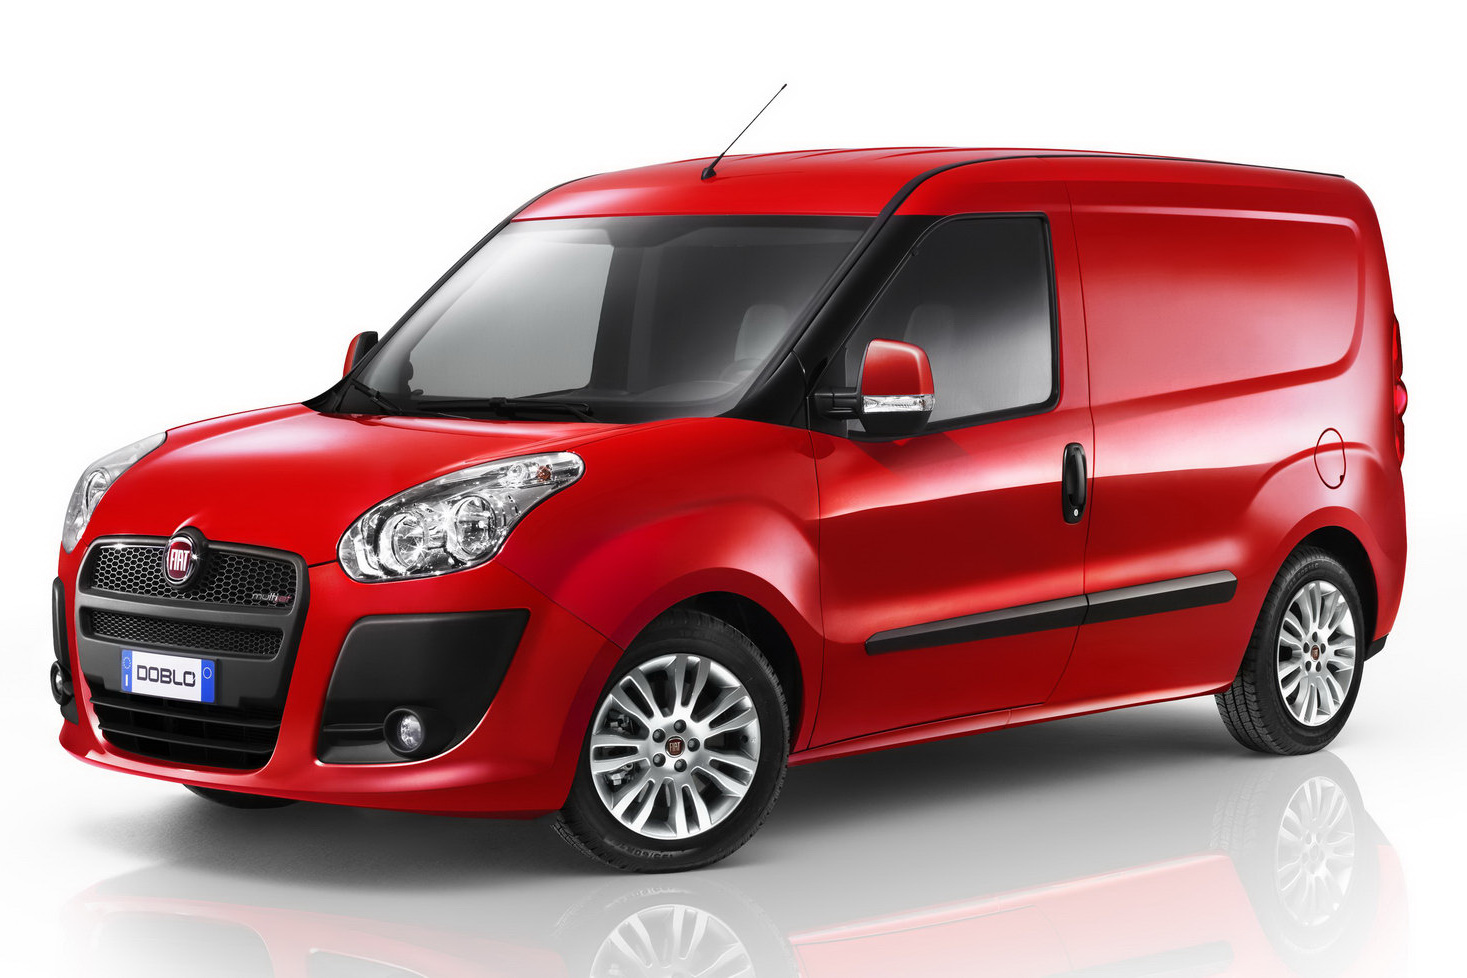 Fiat Doblo